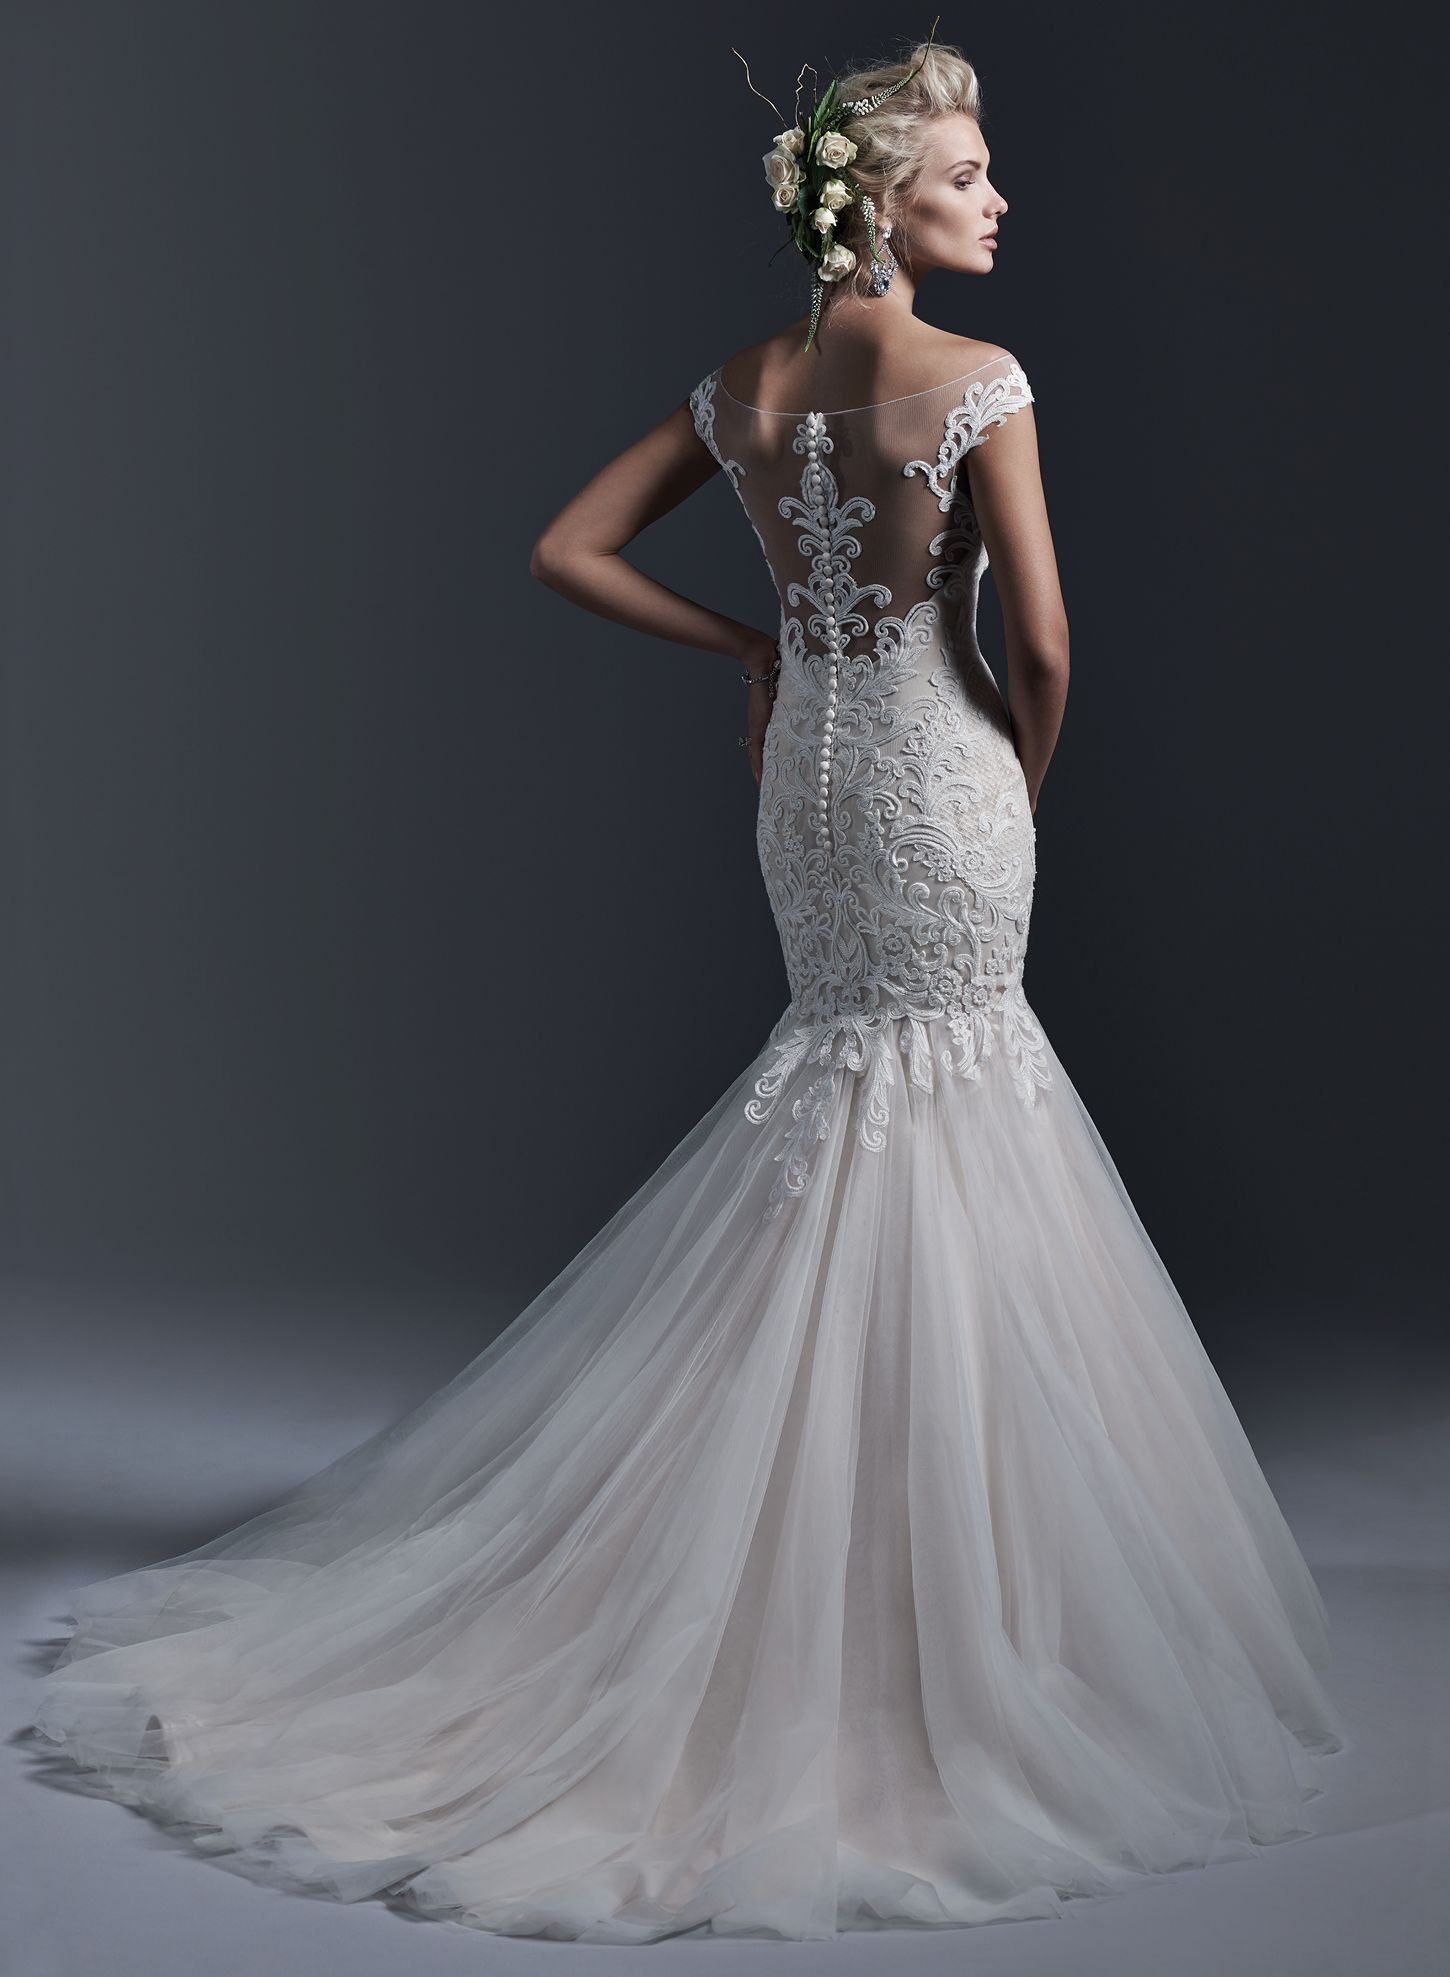 Maggie Sottero Wedding Dresses | Couture bridal, Bridal boutique and ...